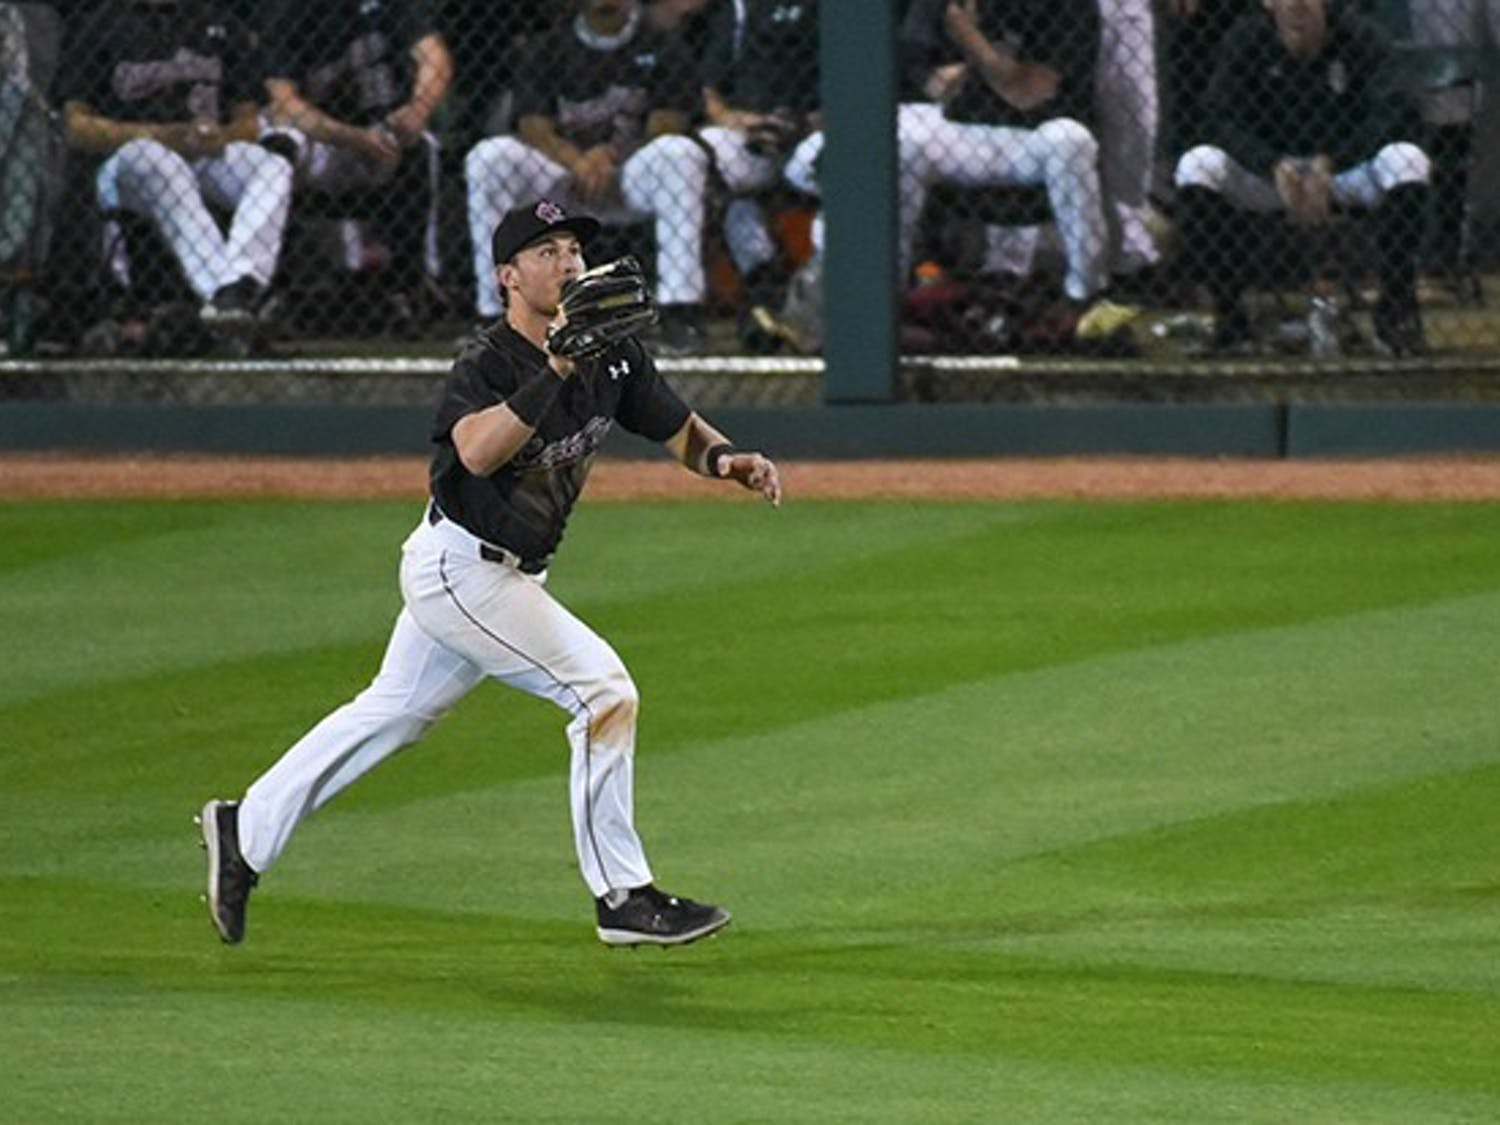 Gamecock junior outfielder Brady Allen runs to catch the ball after it was hit by the opposing team.